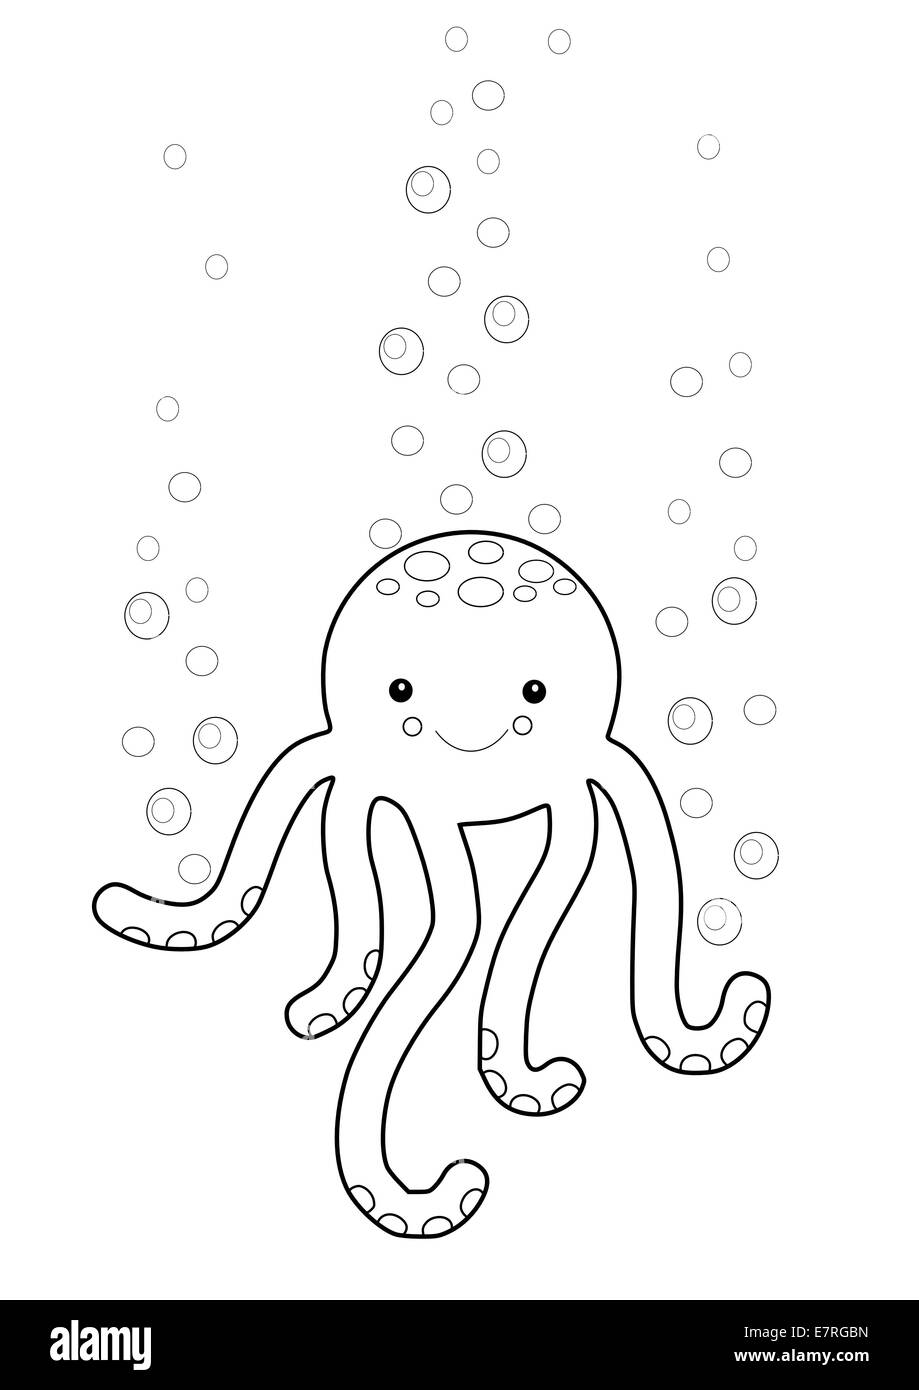 Cute Octopus Vector Imágenes De Stock & Cute Octopus Vector Fotos De ...